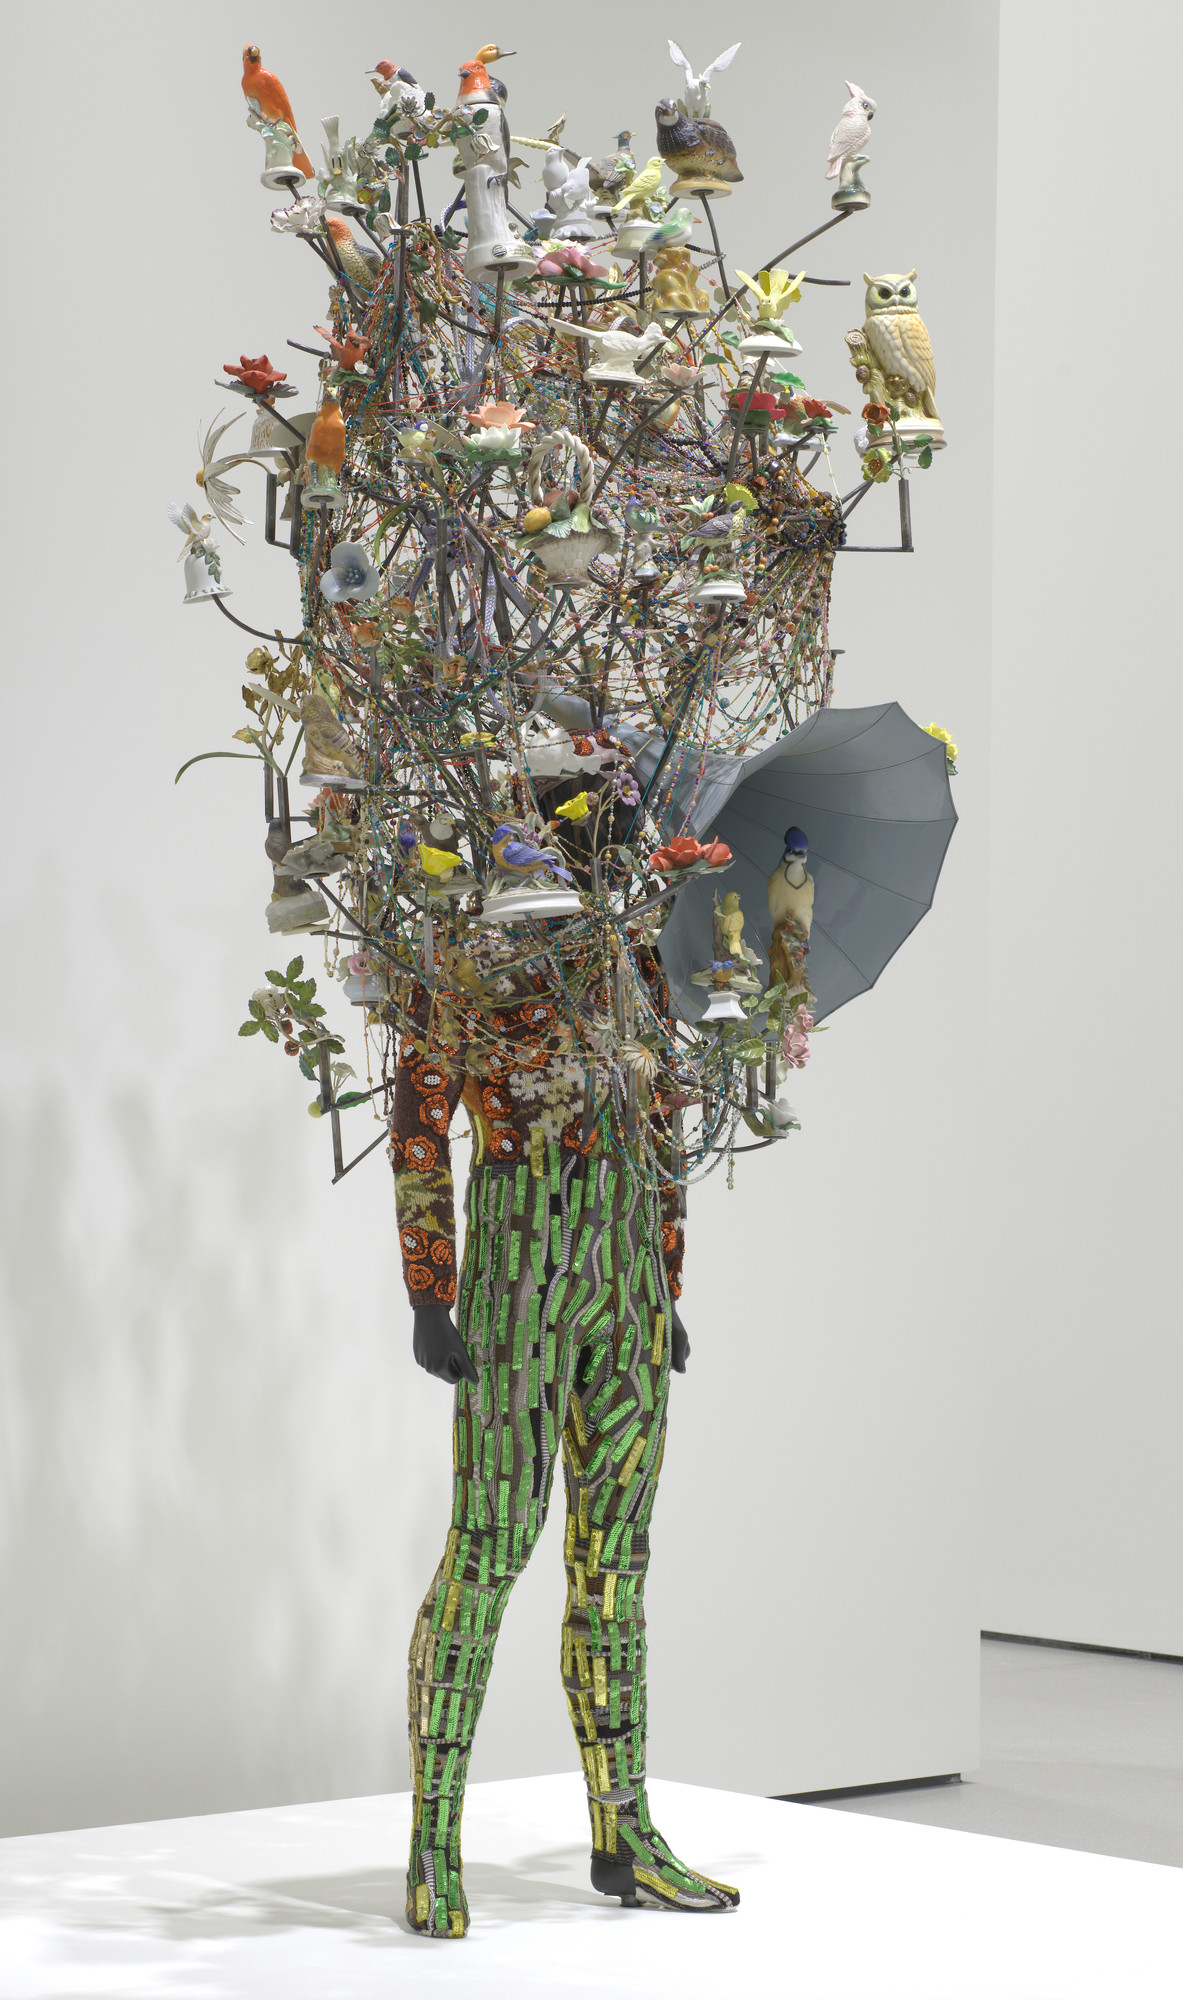 Nick Cave. Soundsuit. 2011